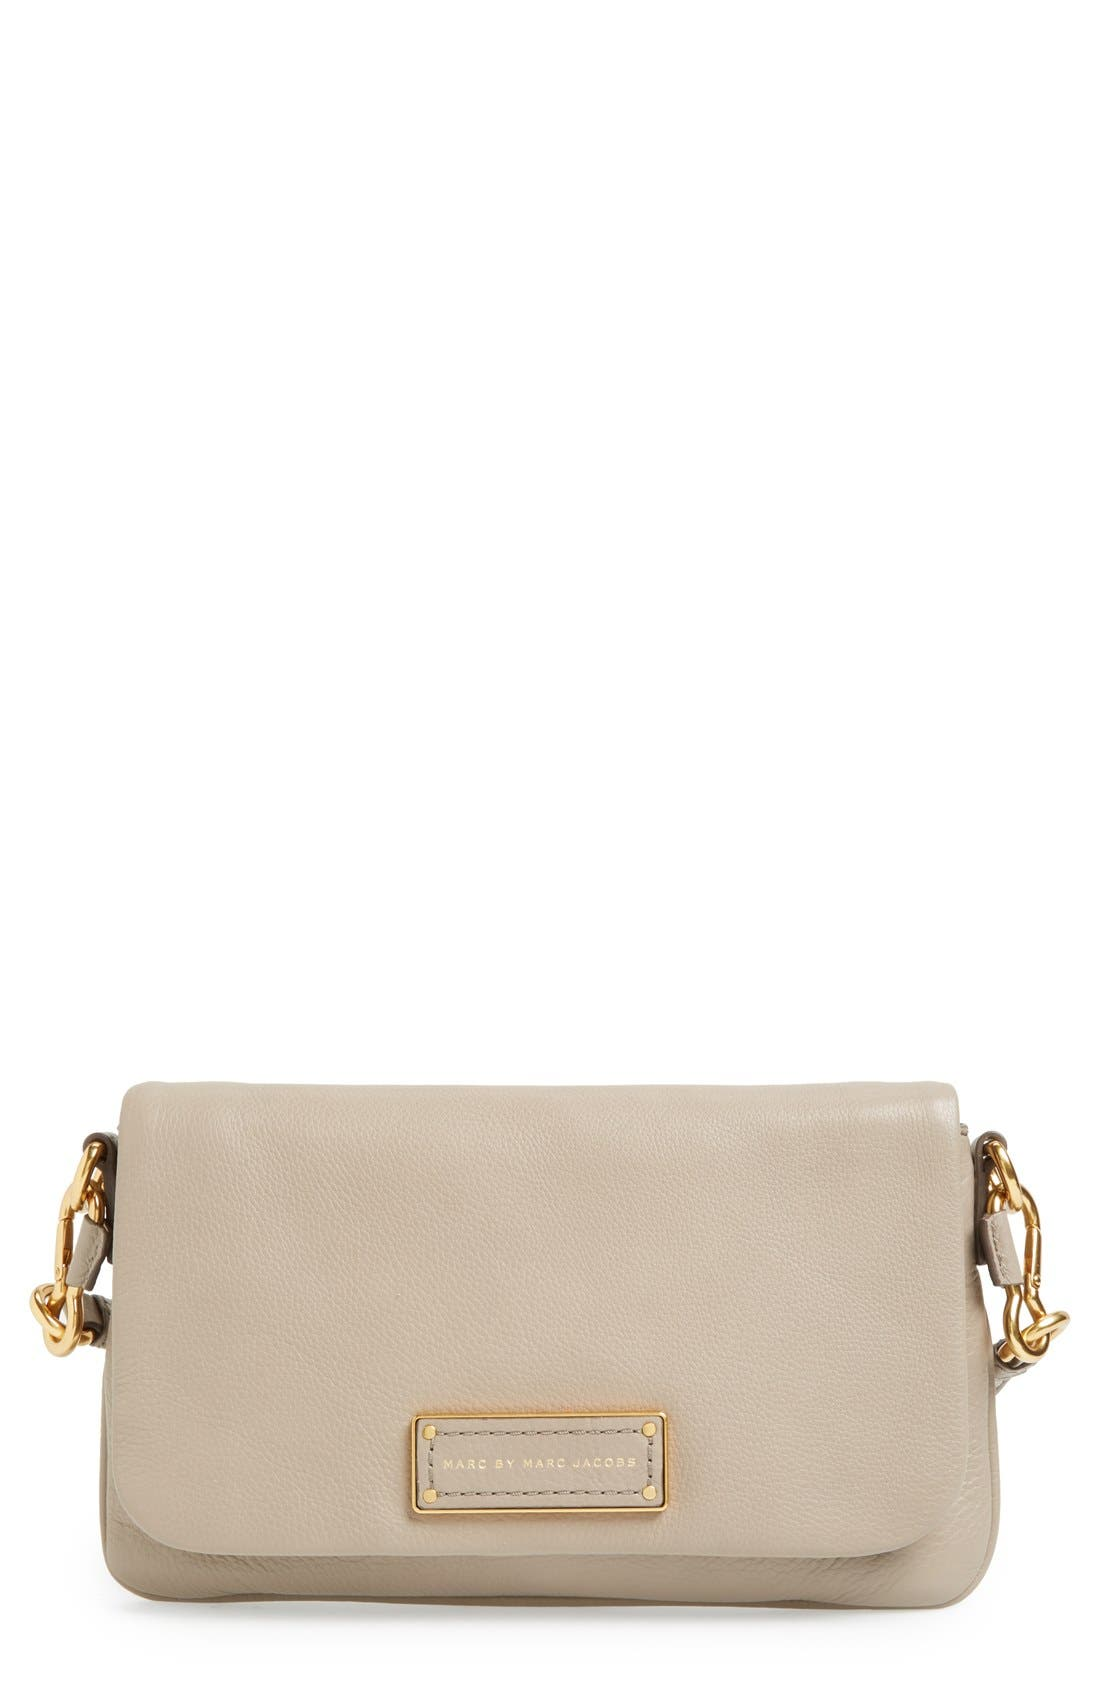 Alternate Image 1 Selected - MARC BY MARC JACOBS 'Too Hot to Handle - Percy' Crossbody Bag